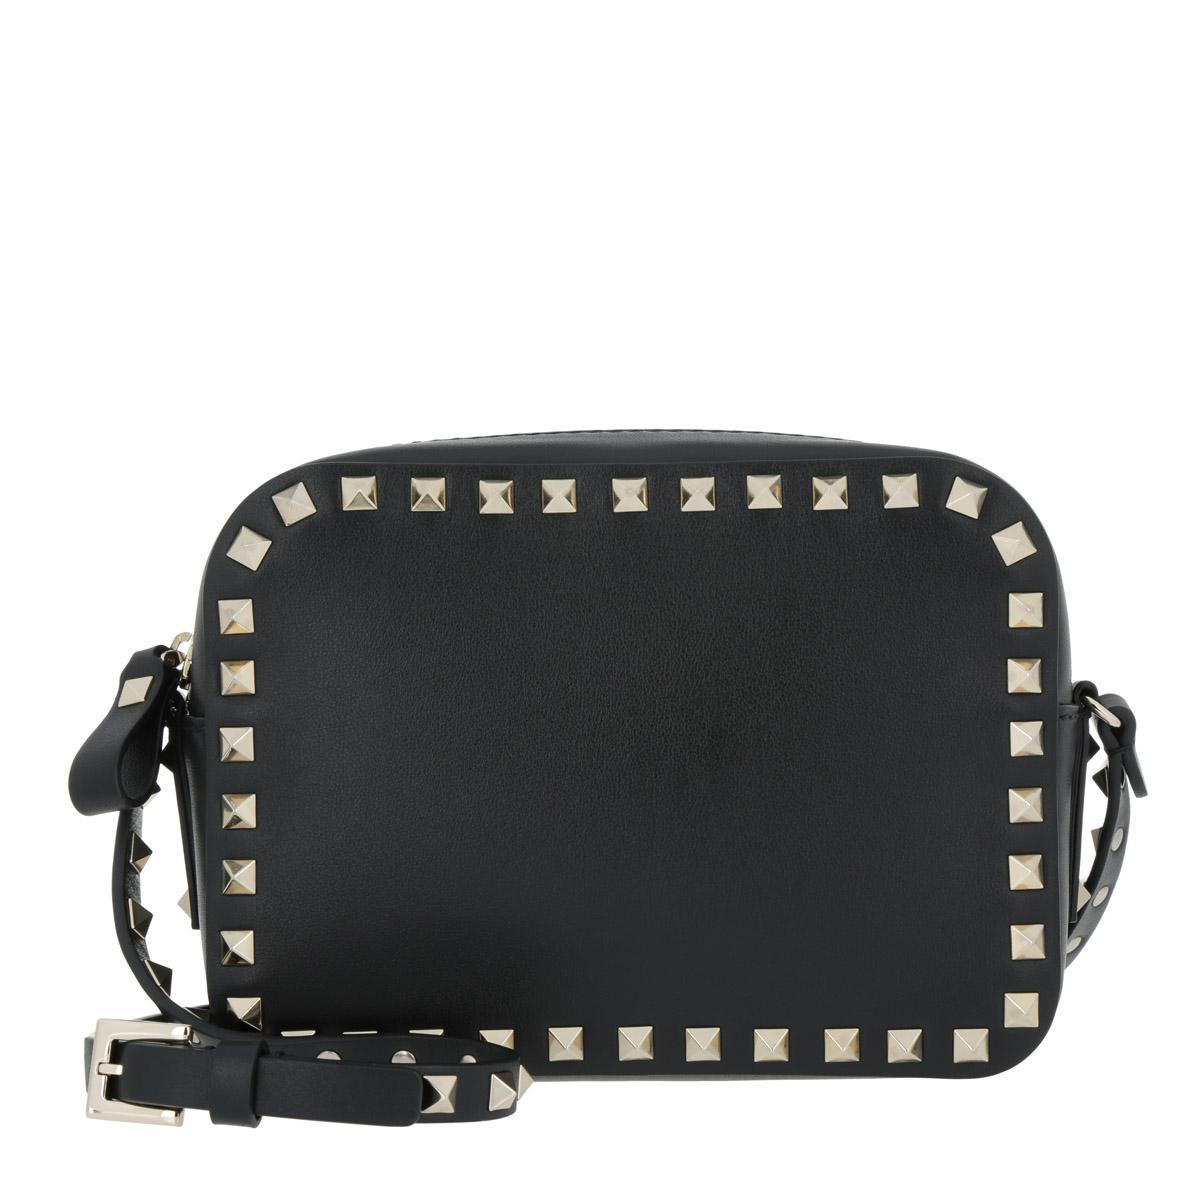 Valentino Rockstud Camera Crossbody Bag Black in Black - Lyst c1bc7fb2cf